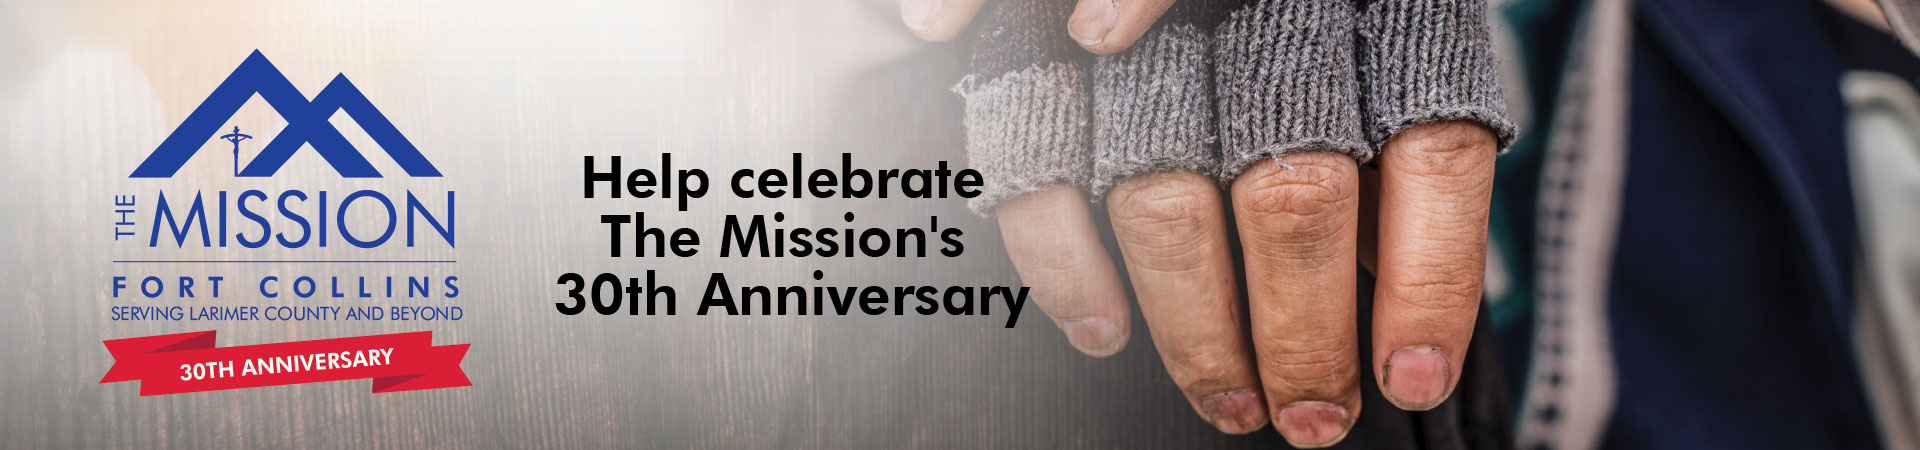 The Mission 30th Anniversary Celebration